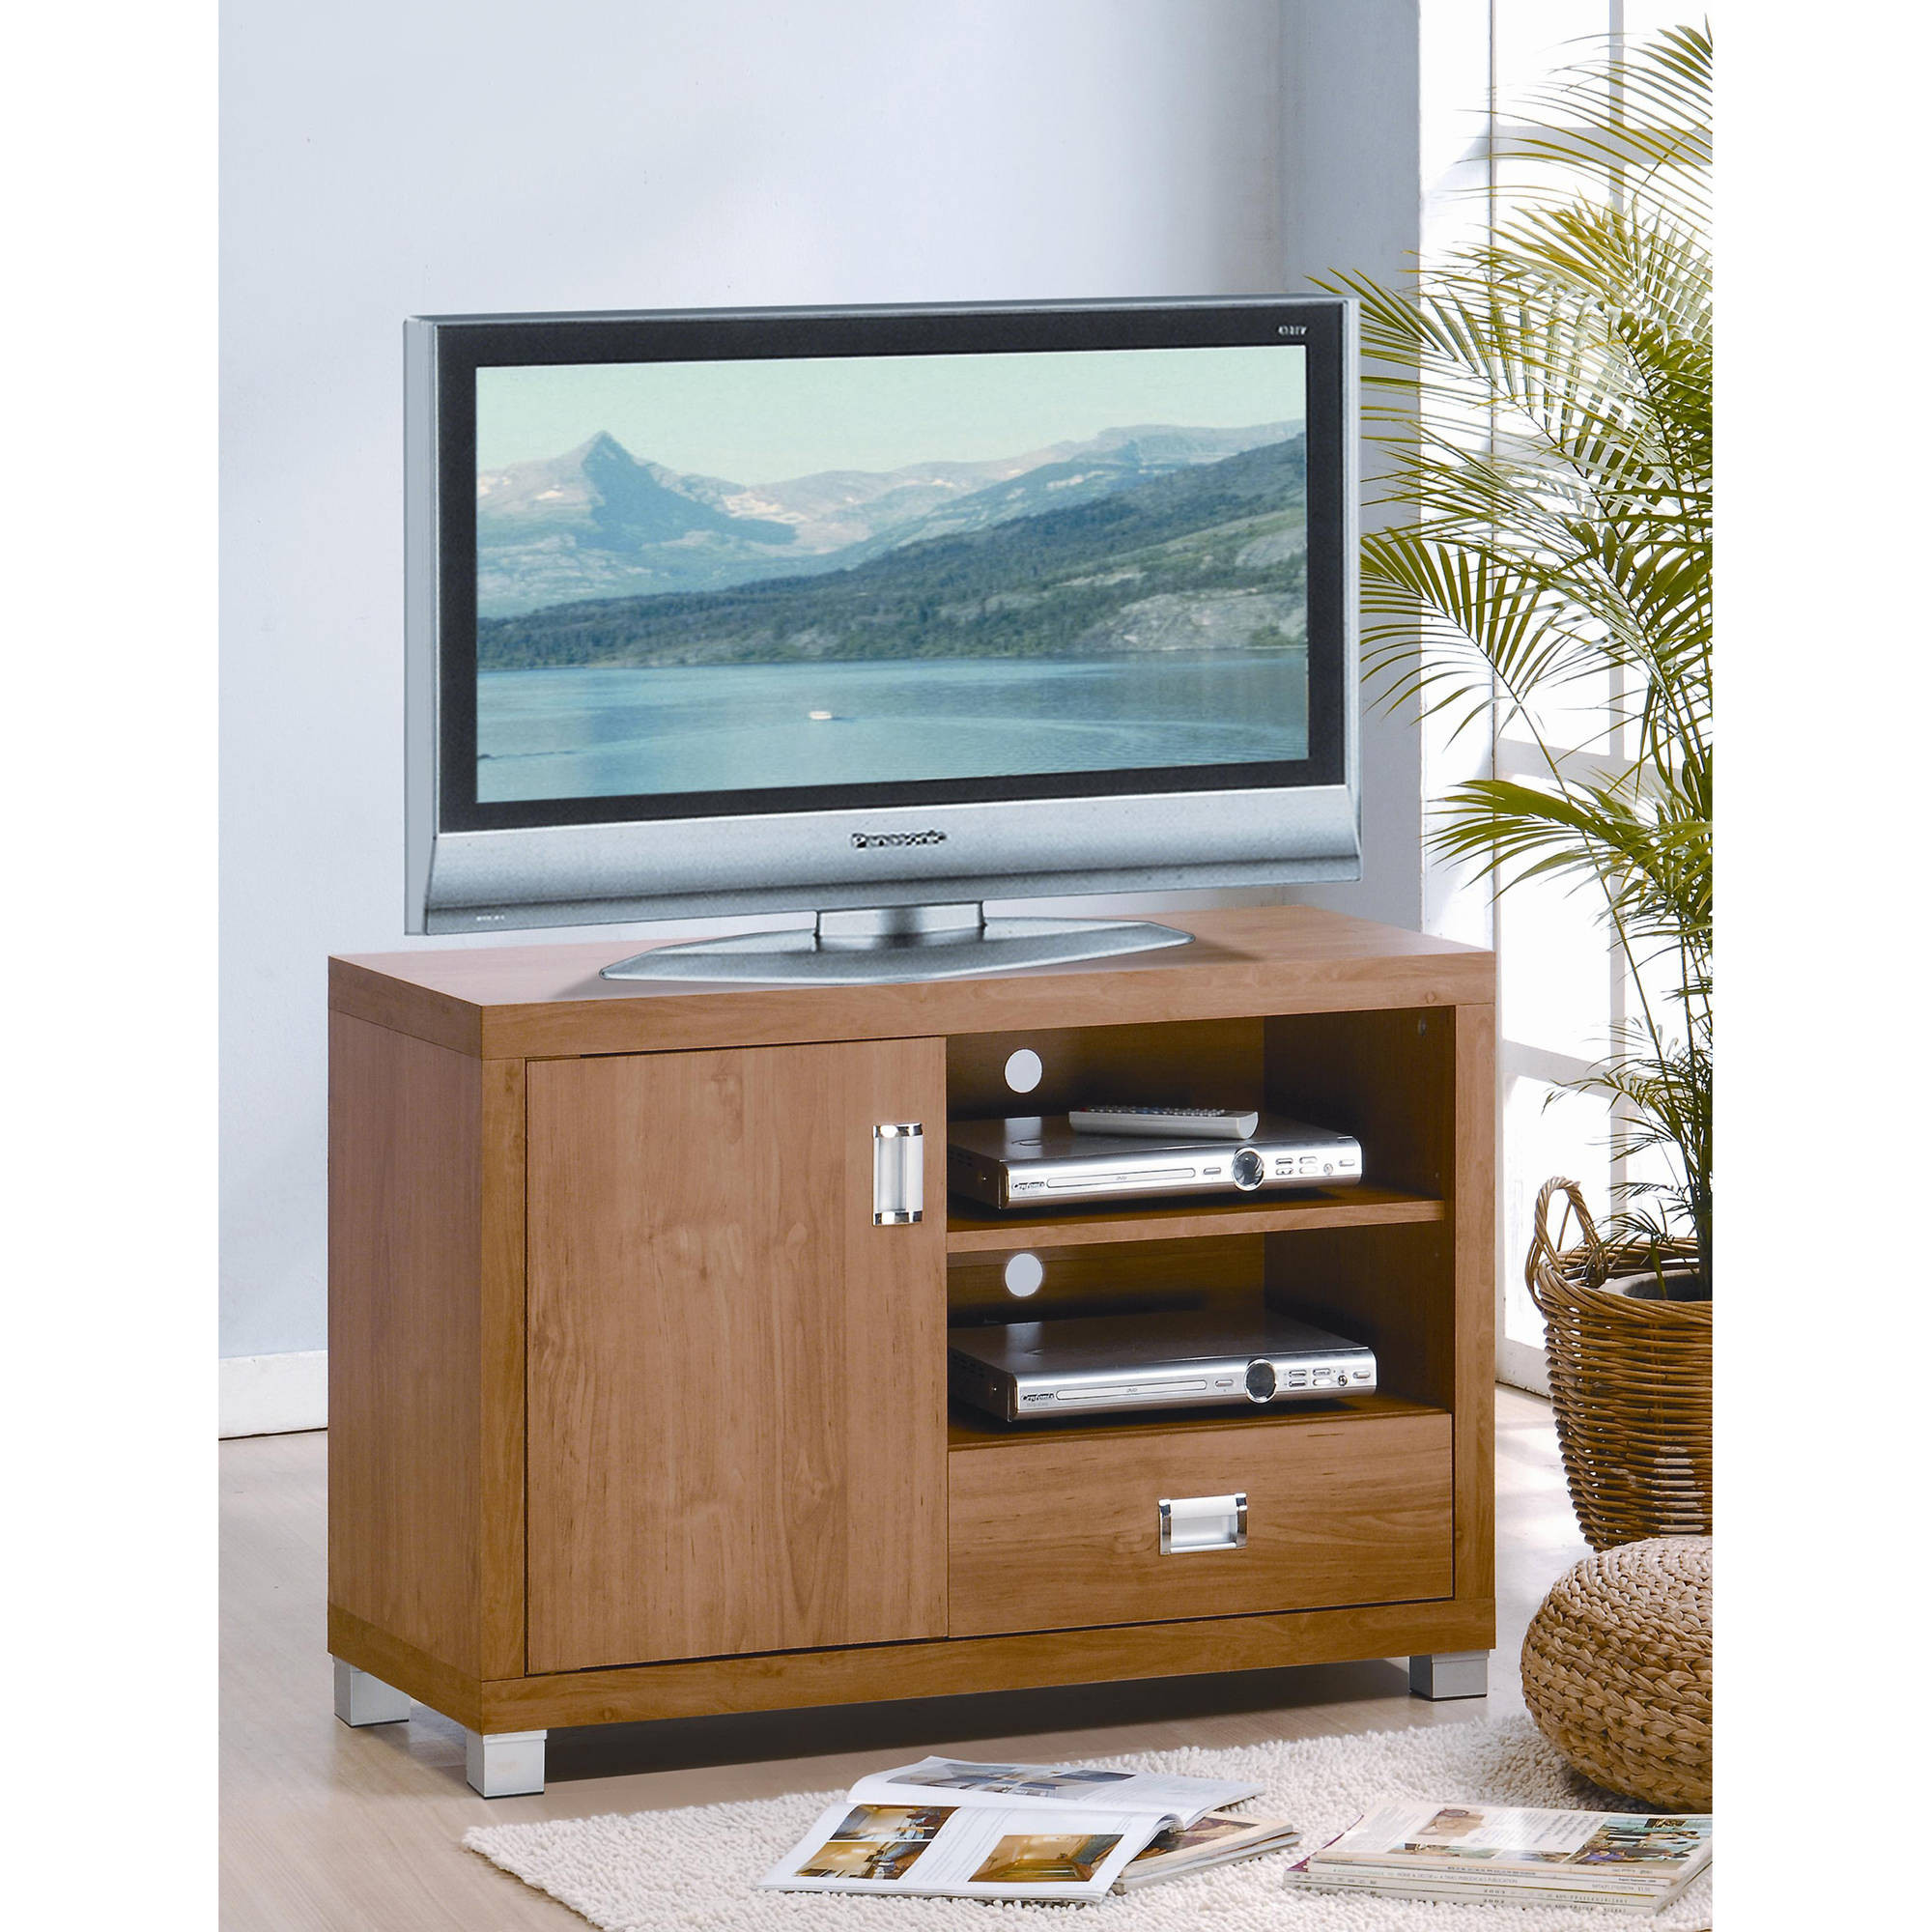 Best ideas about Tall Tv Stands For Bedroom . Save or Pin Modern Tall Oak Tv Stand With Media Cabinet For Bedroom of Now.